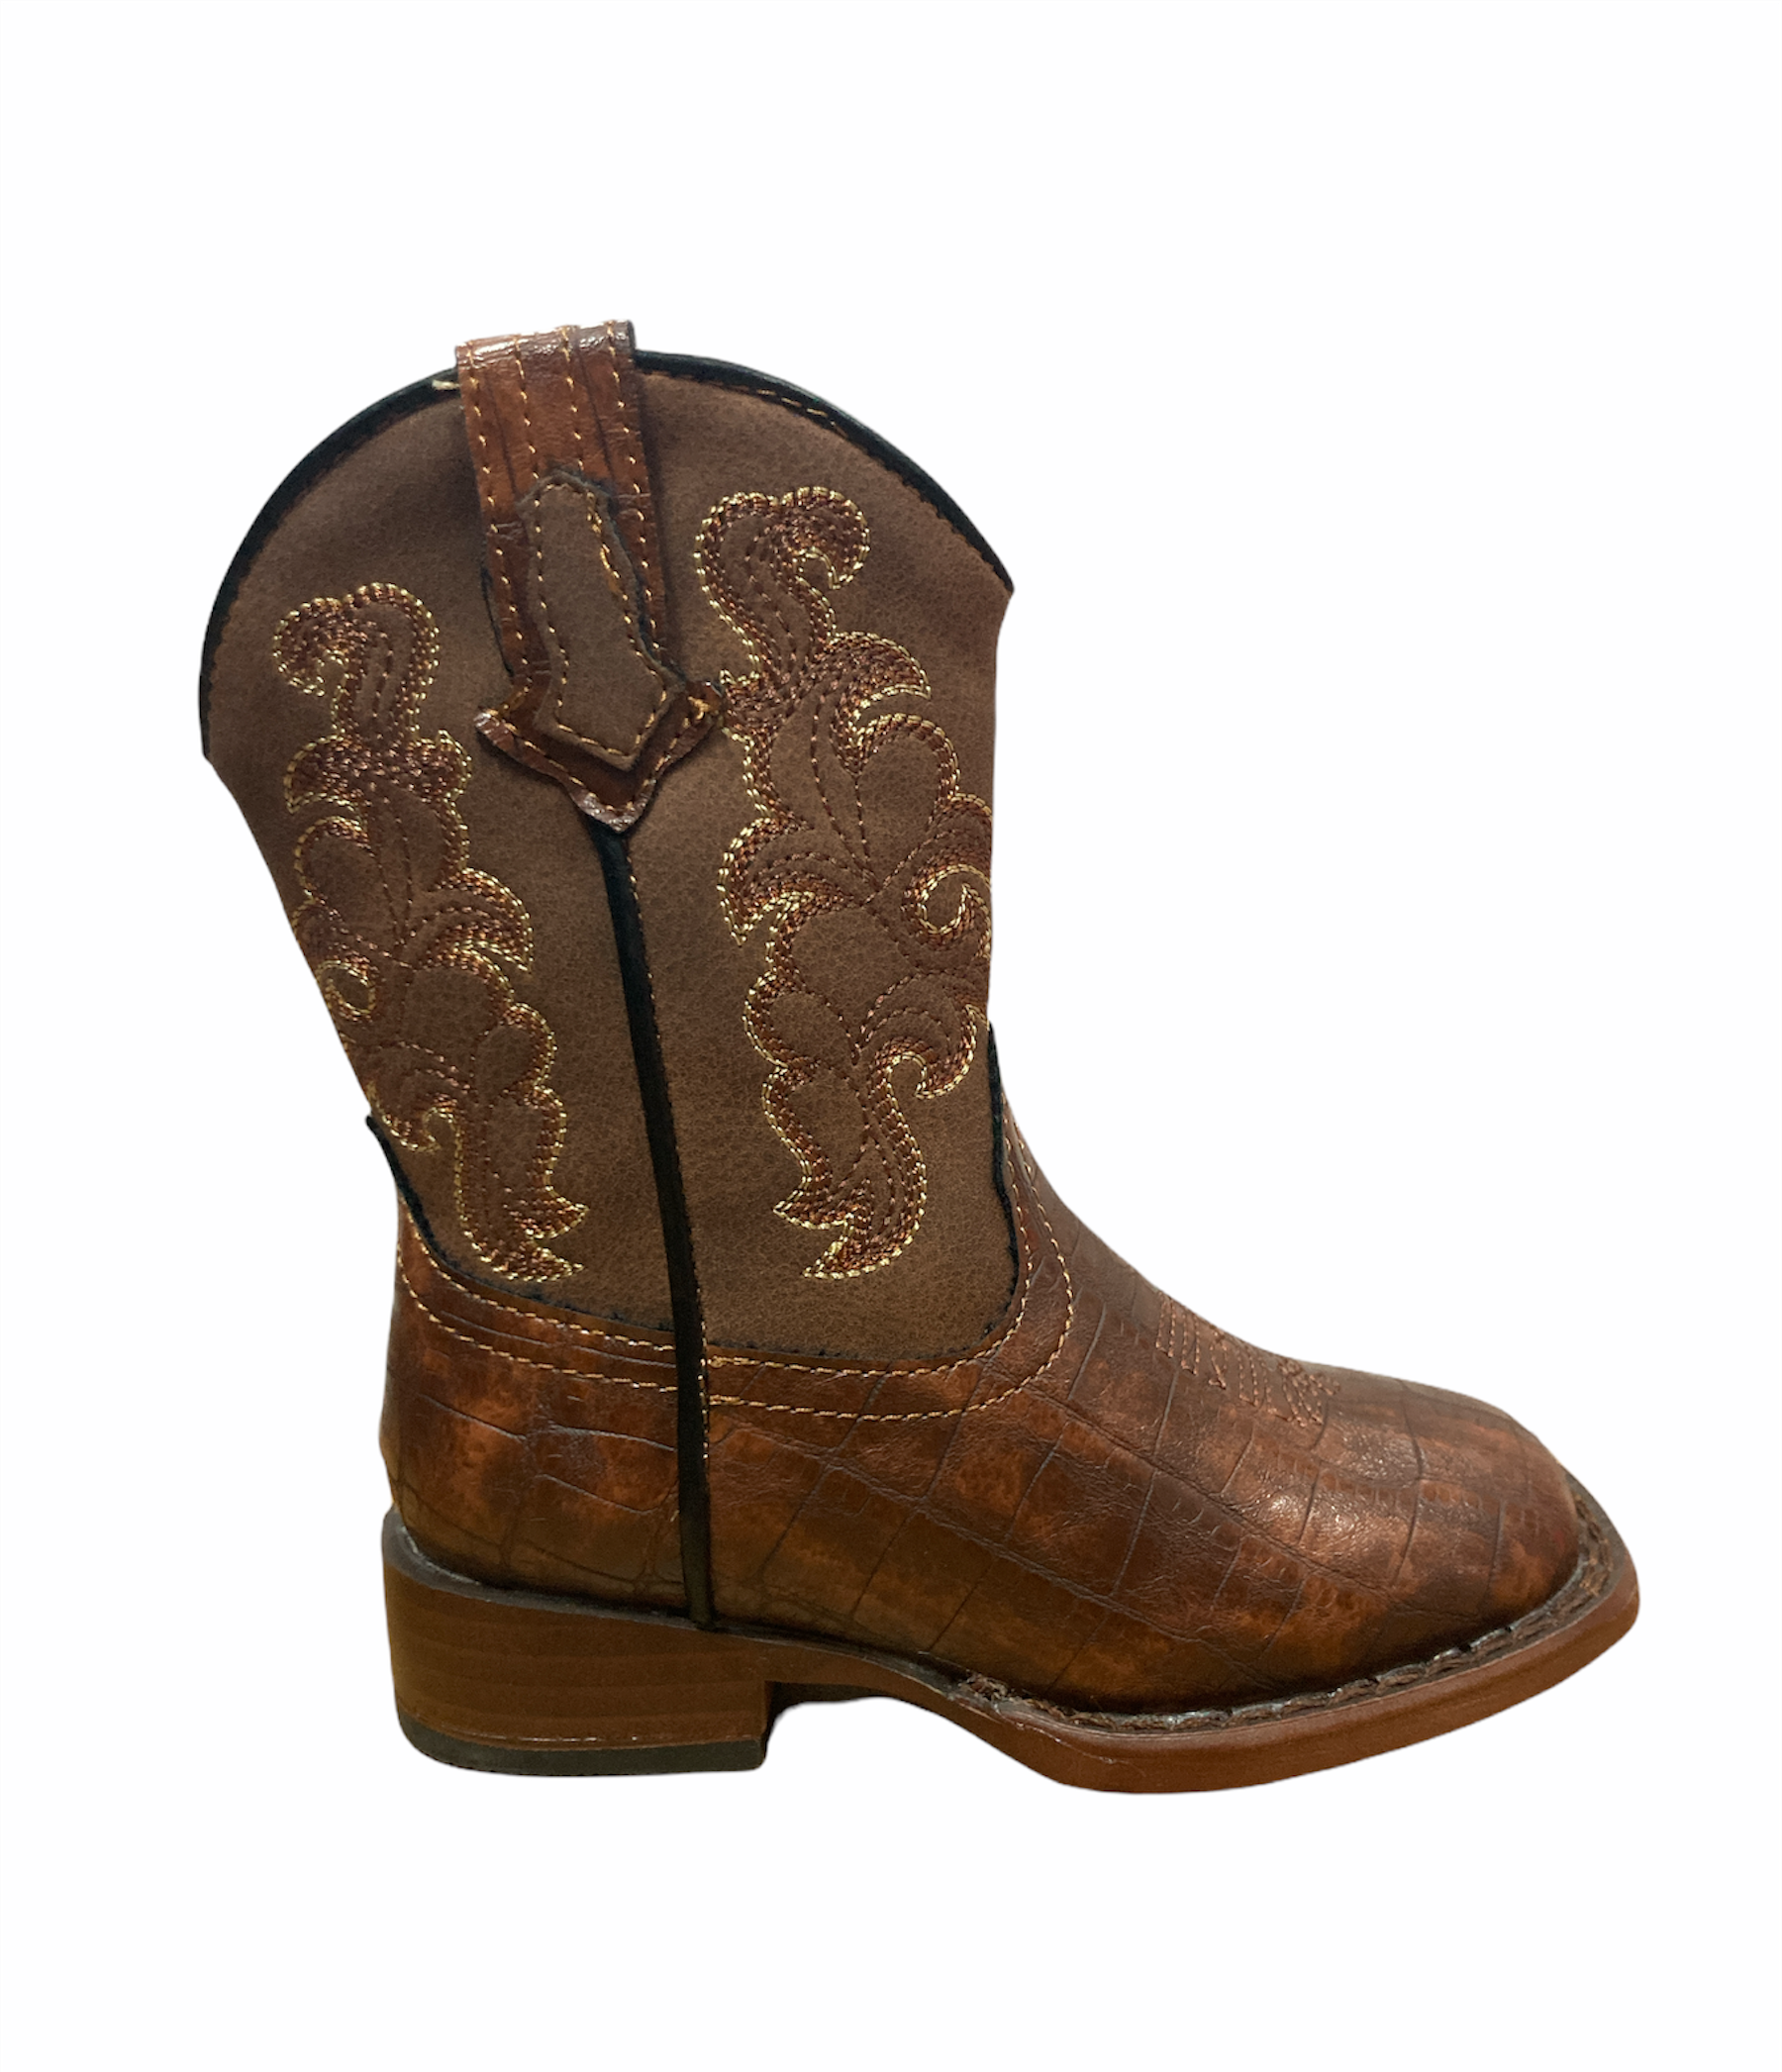 Just Country Kids Viper Roper Boots Size 6 (Big Kids) at Bowral Coop